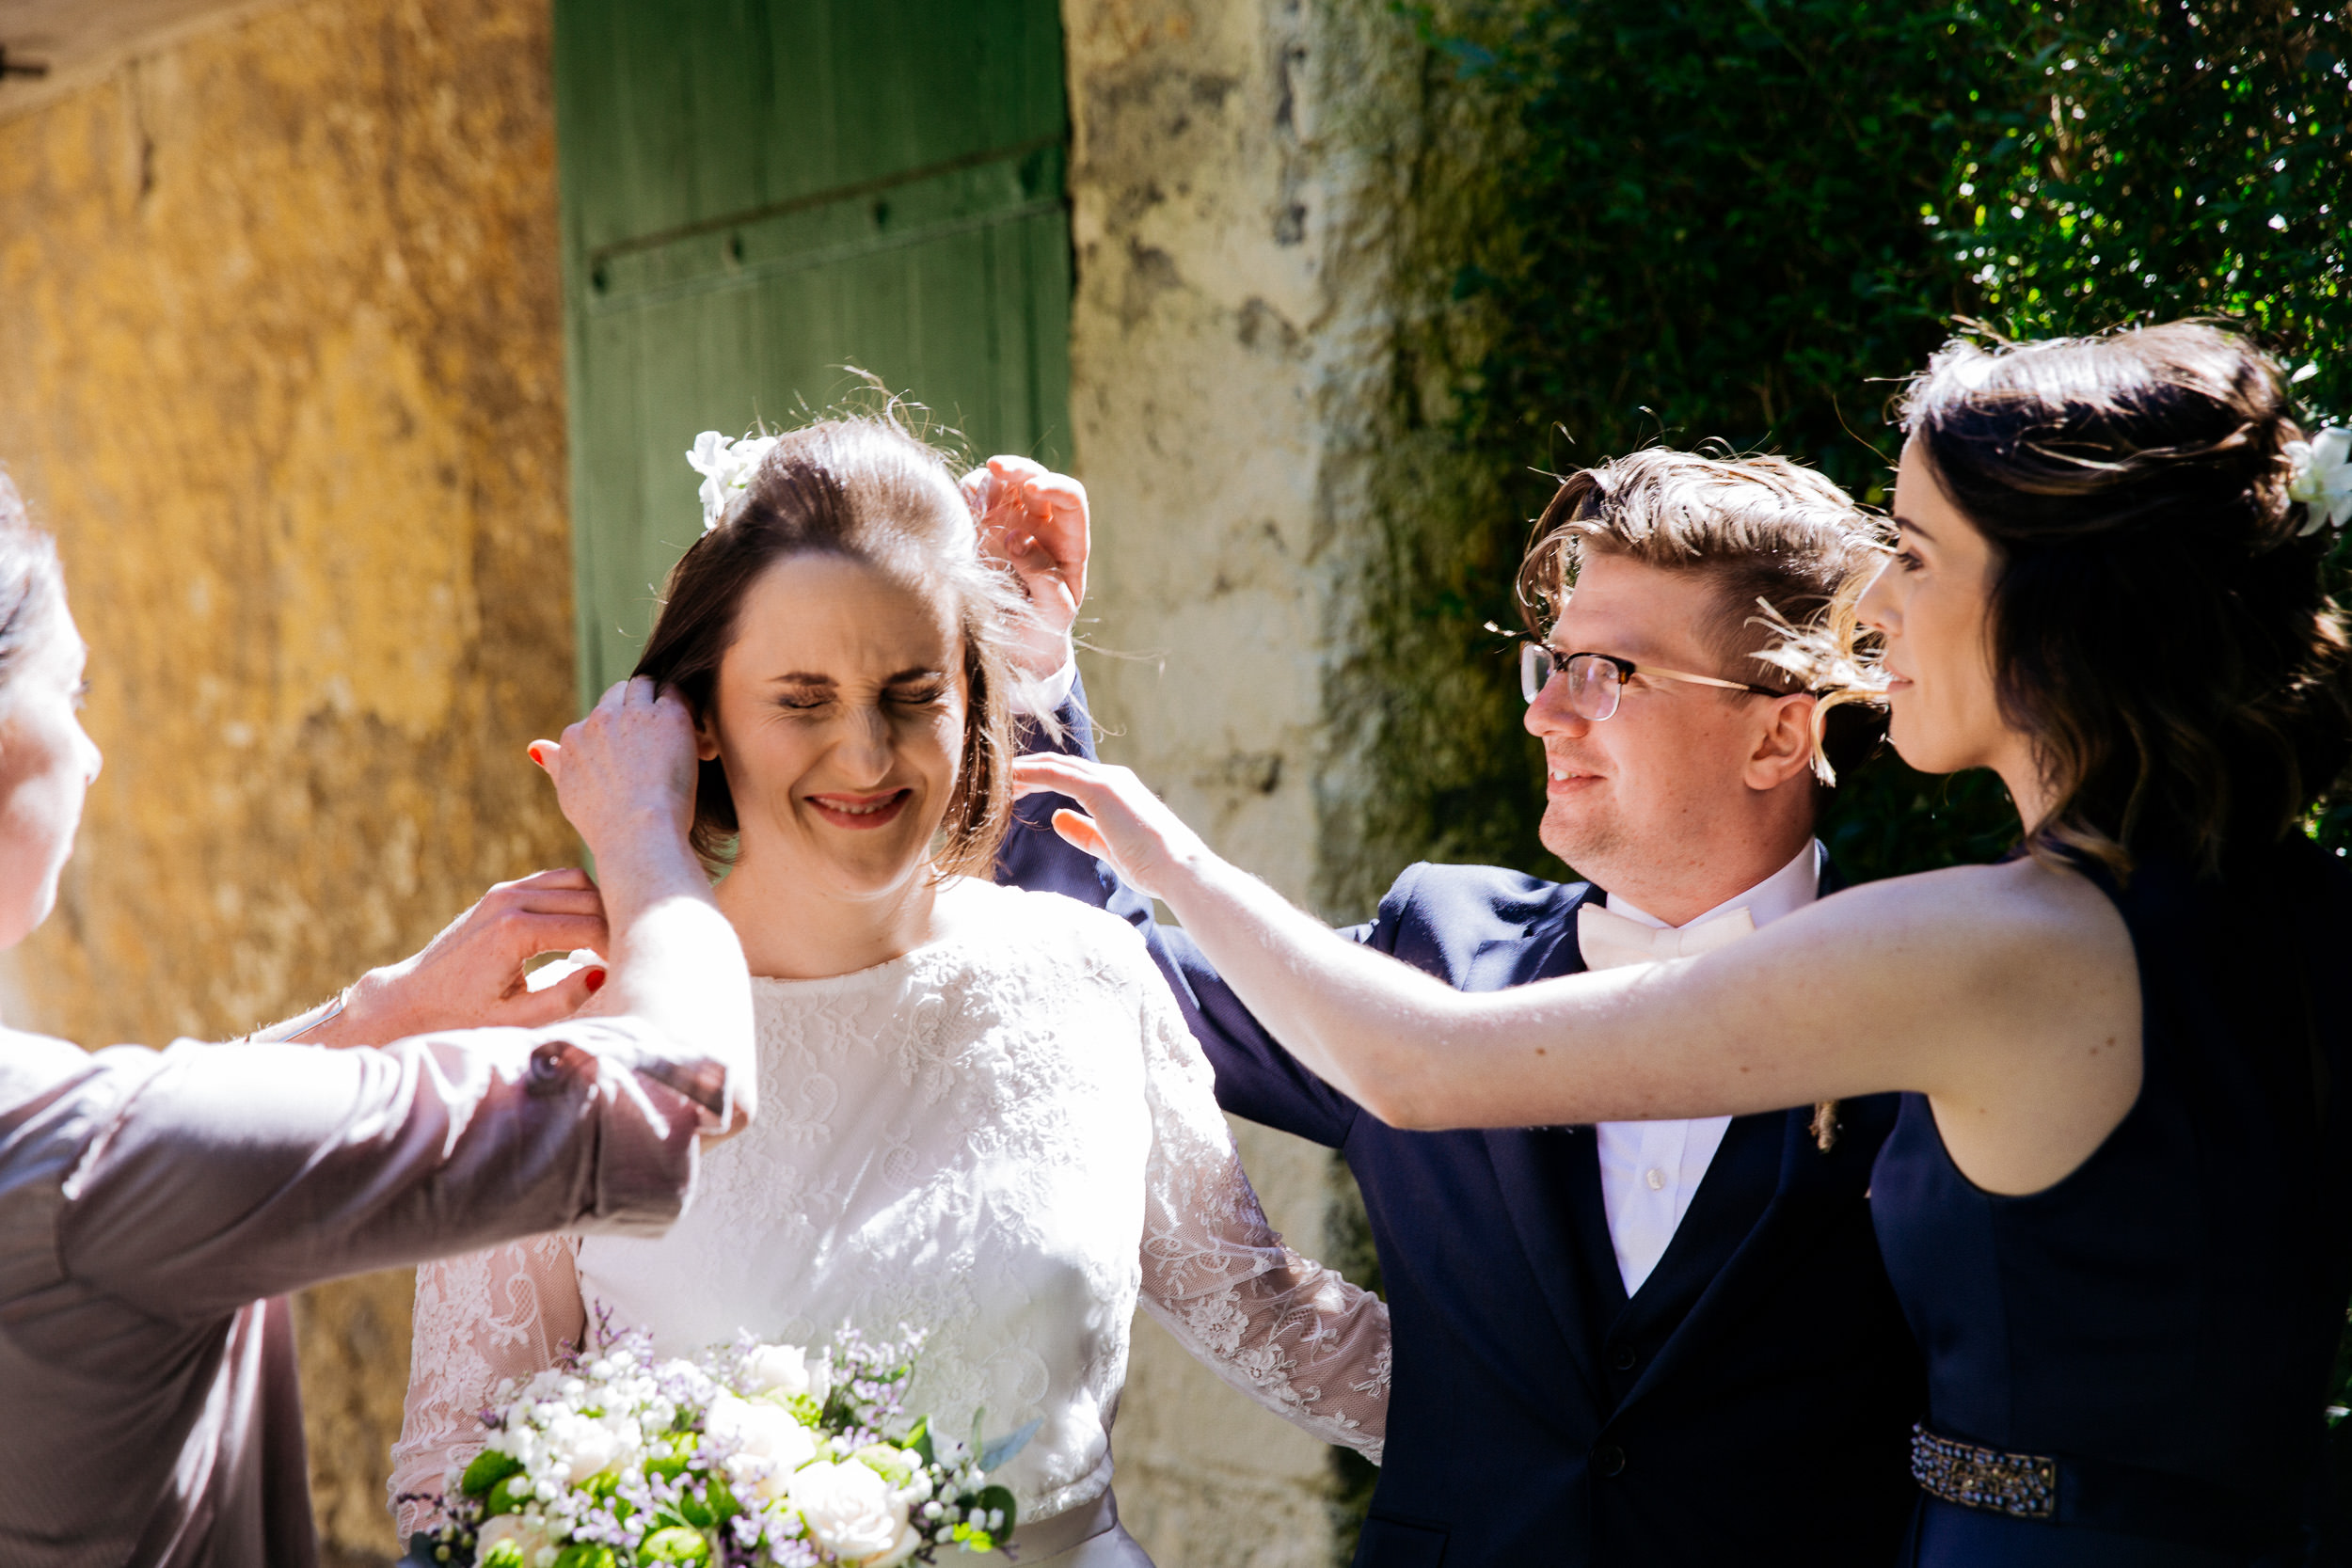 clairebyrnephotography-fun-wedding-photographer-ireland-creative-239.jpg